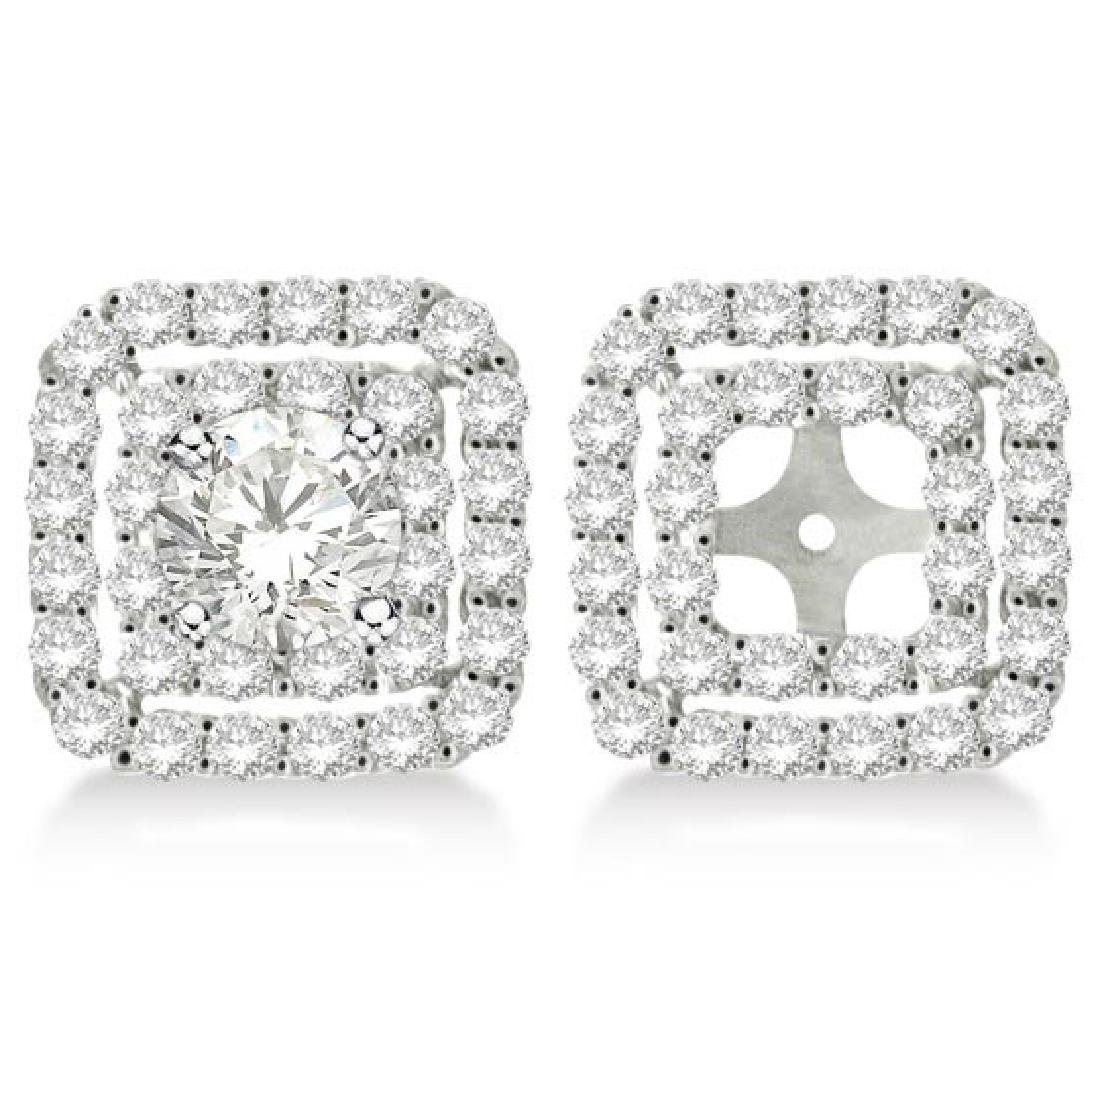 Pave-Set Square Diamond Earring Jackets in 14k White Go